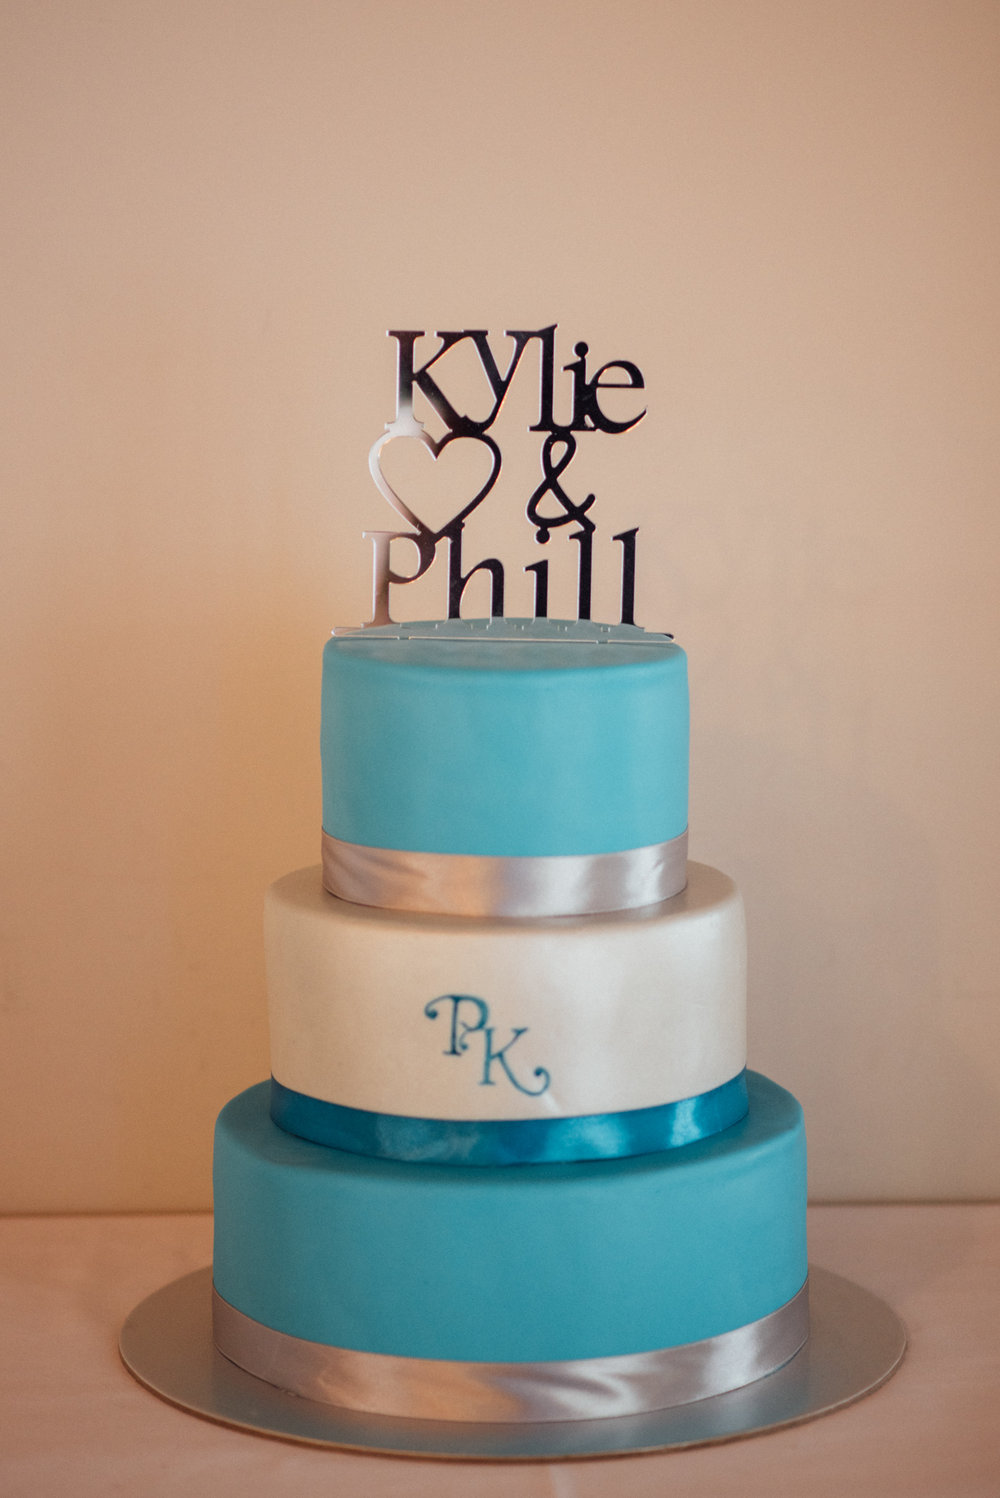 kylie and phill (53 of 165).jpg